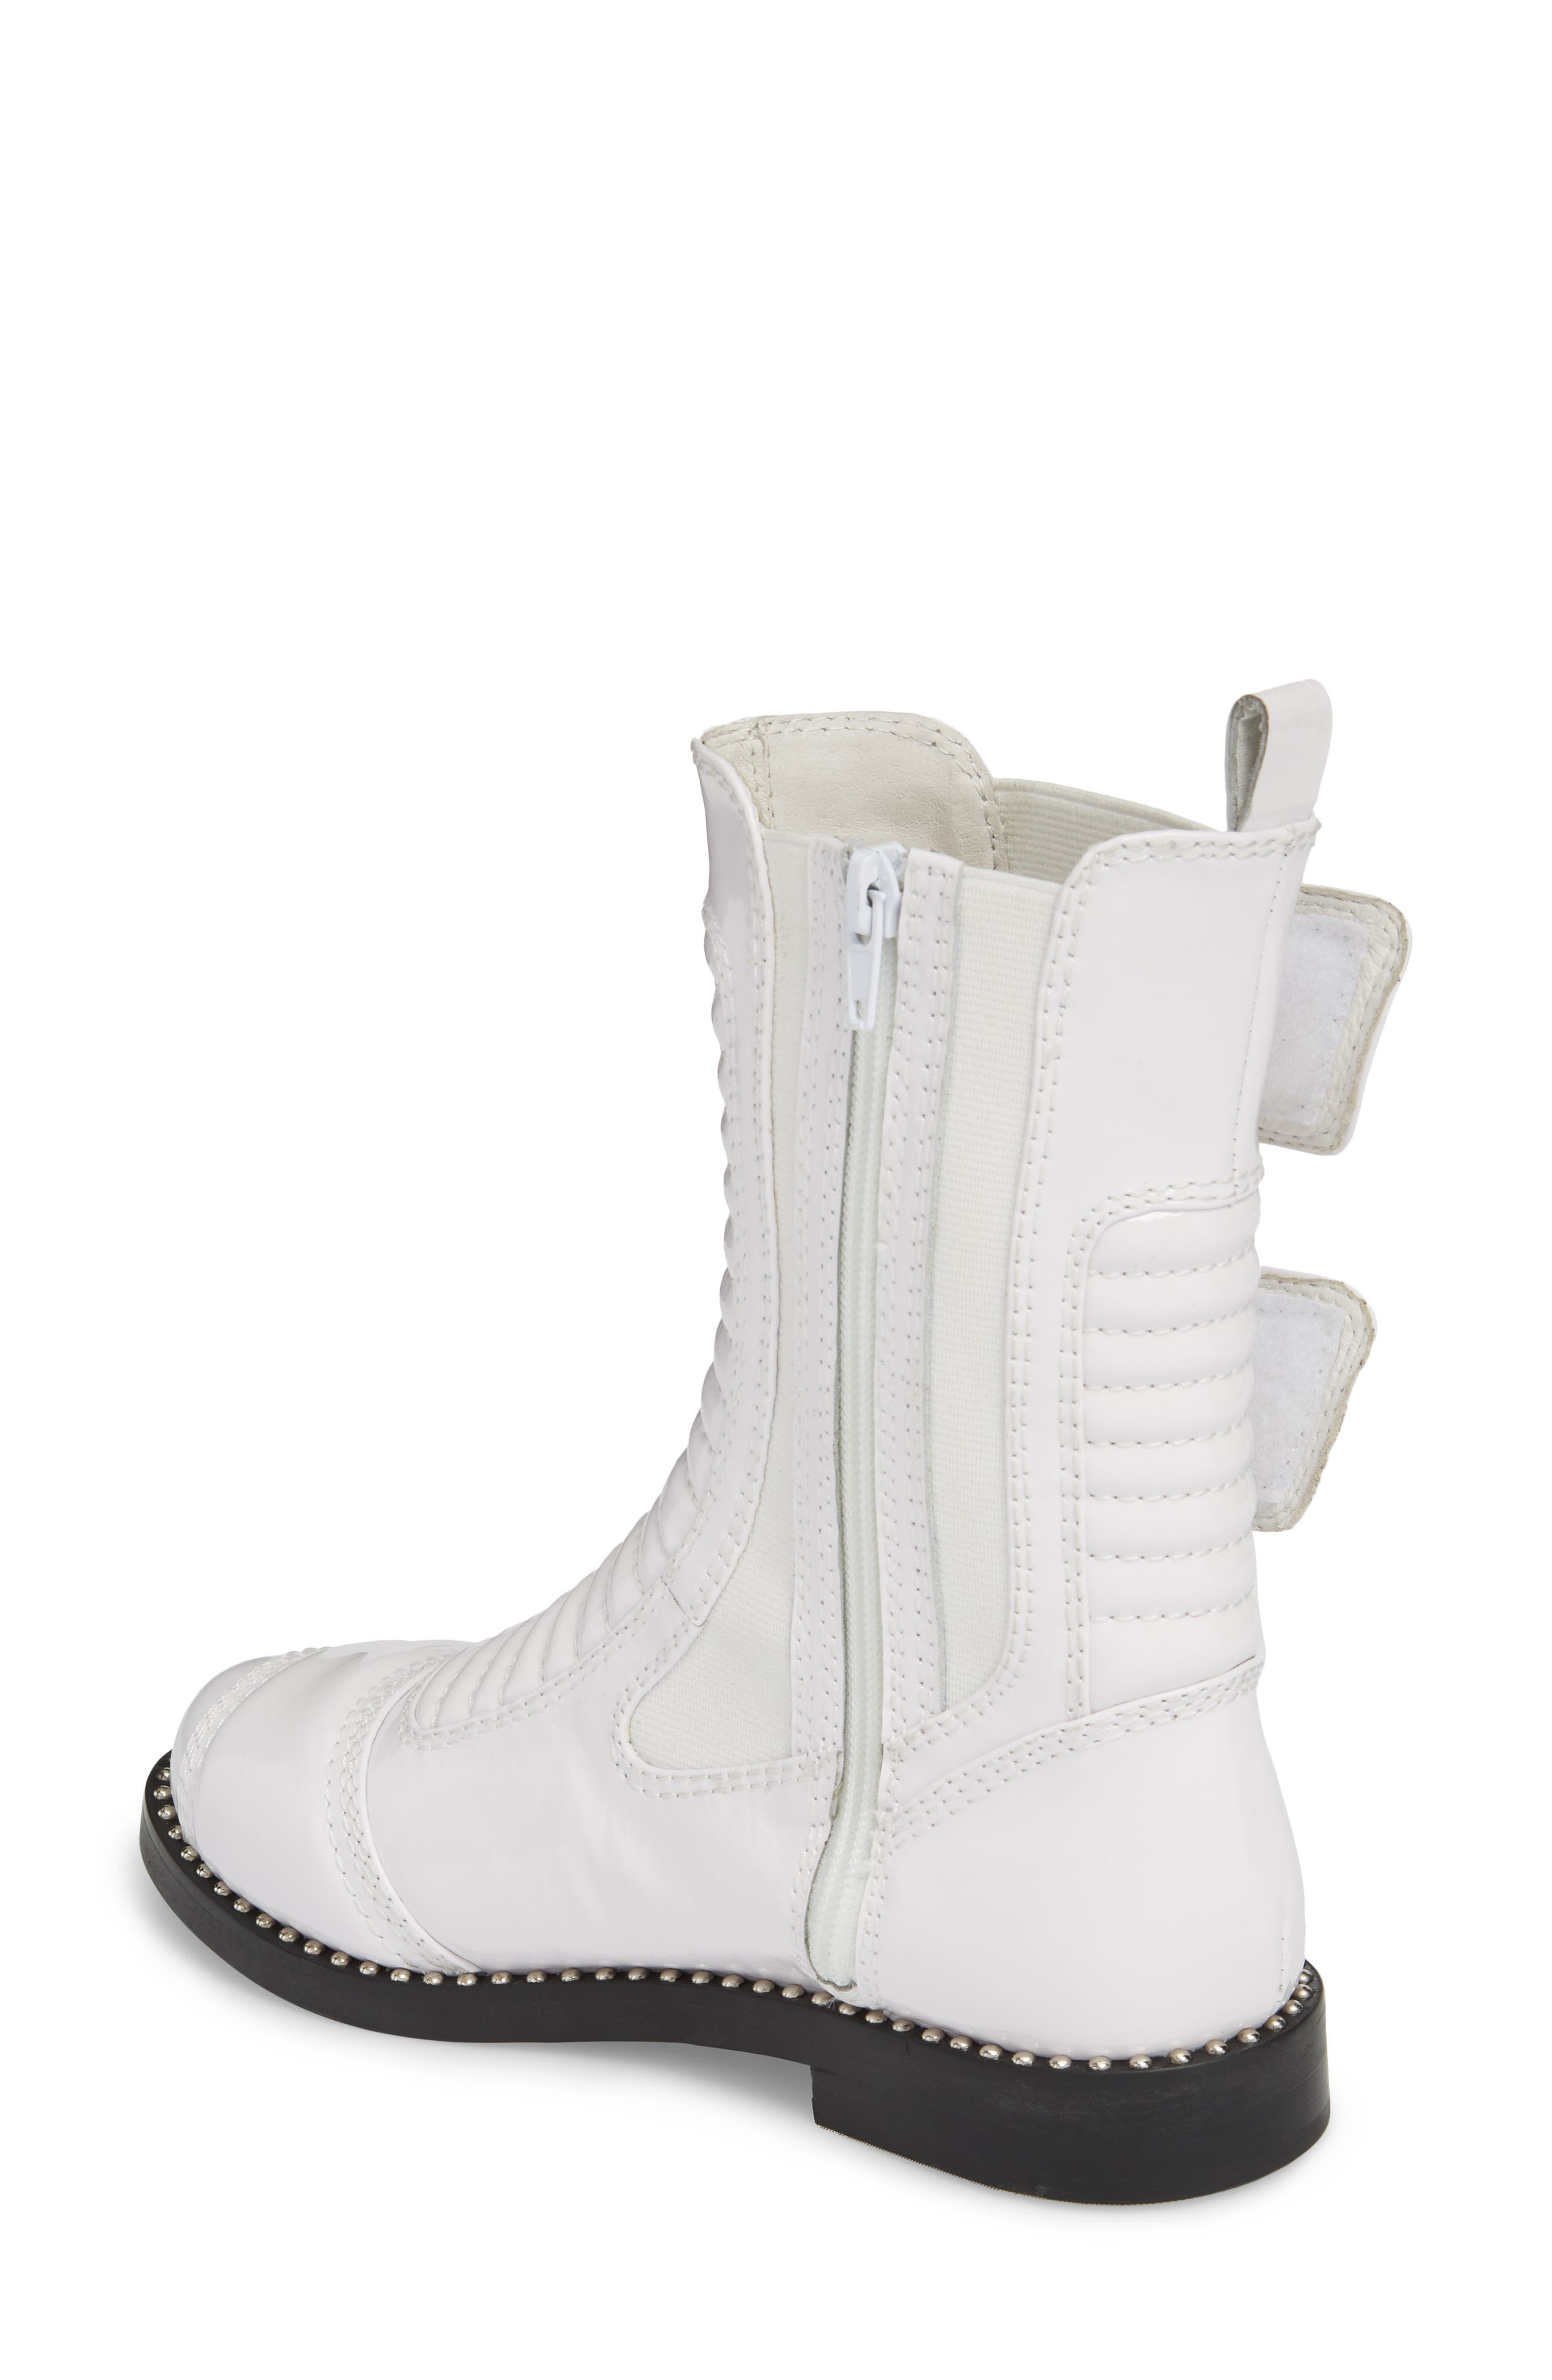 Police Boot,                             Alternate thumbnail 4, color,